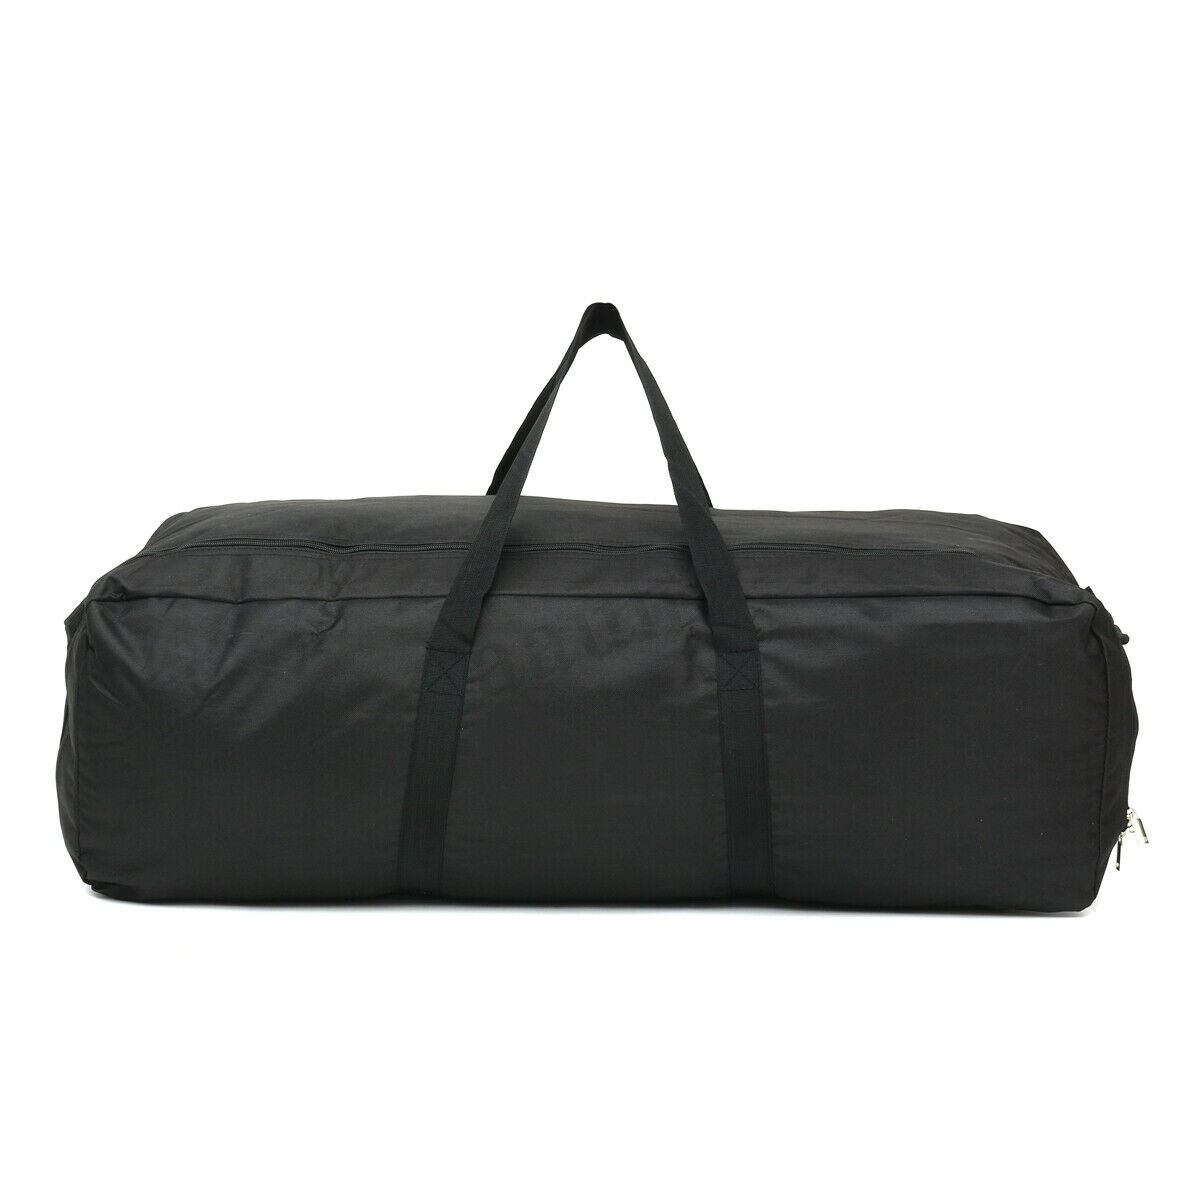 Travel Luggage Duffle Bag Lightweight Portable Handbag Skull Large Capacity Waterproof Foldable Storage Tote